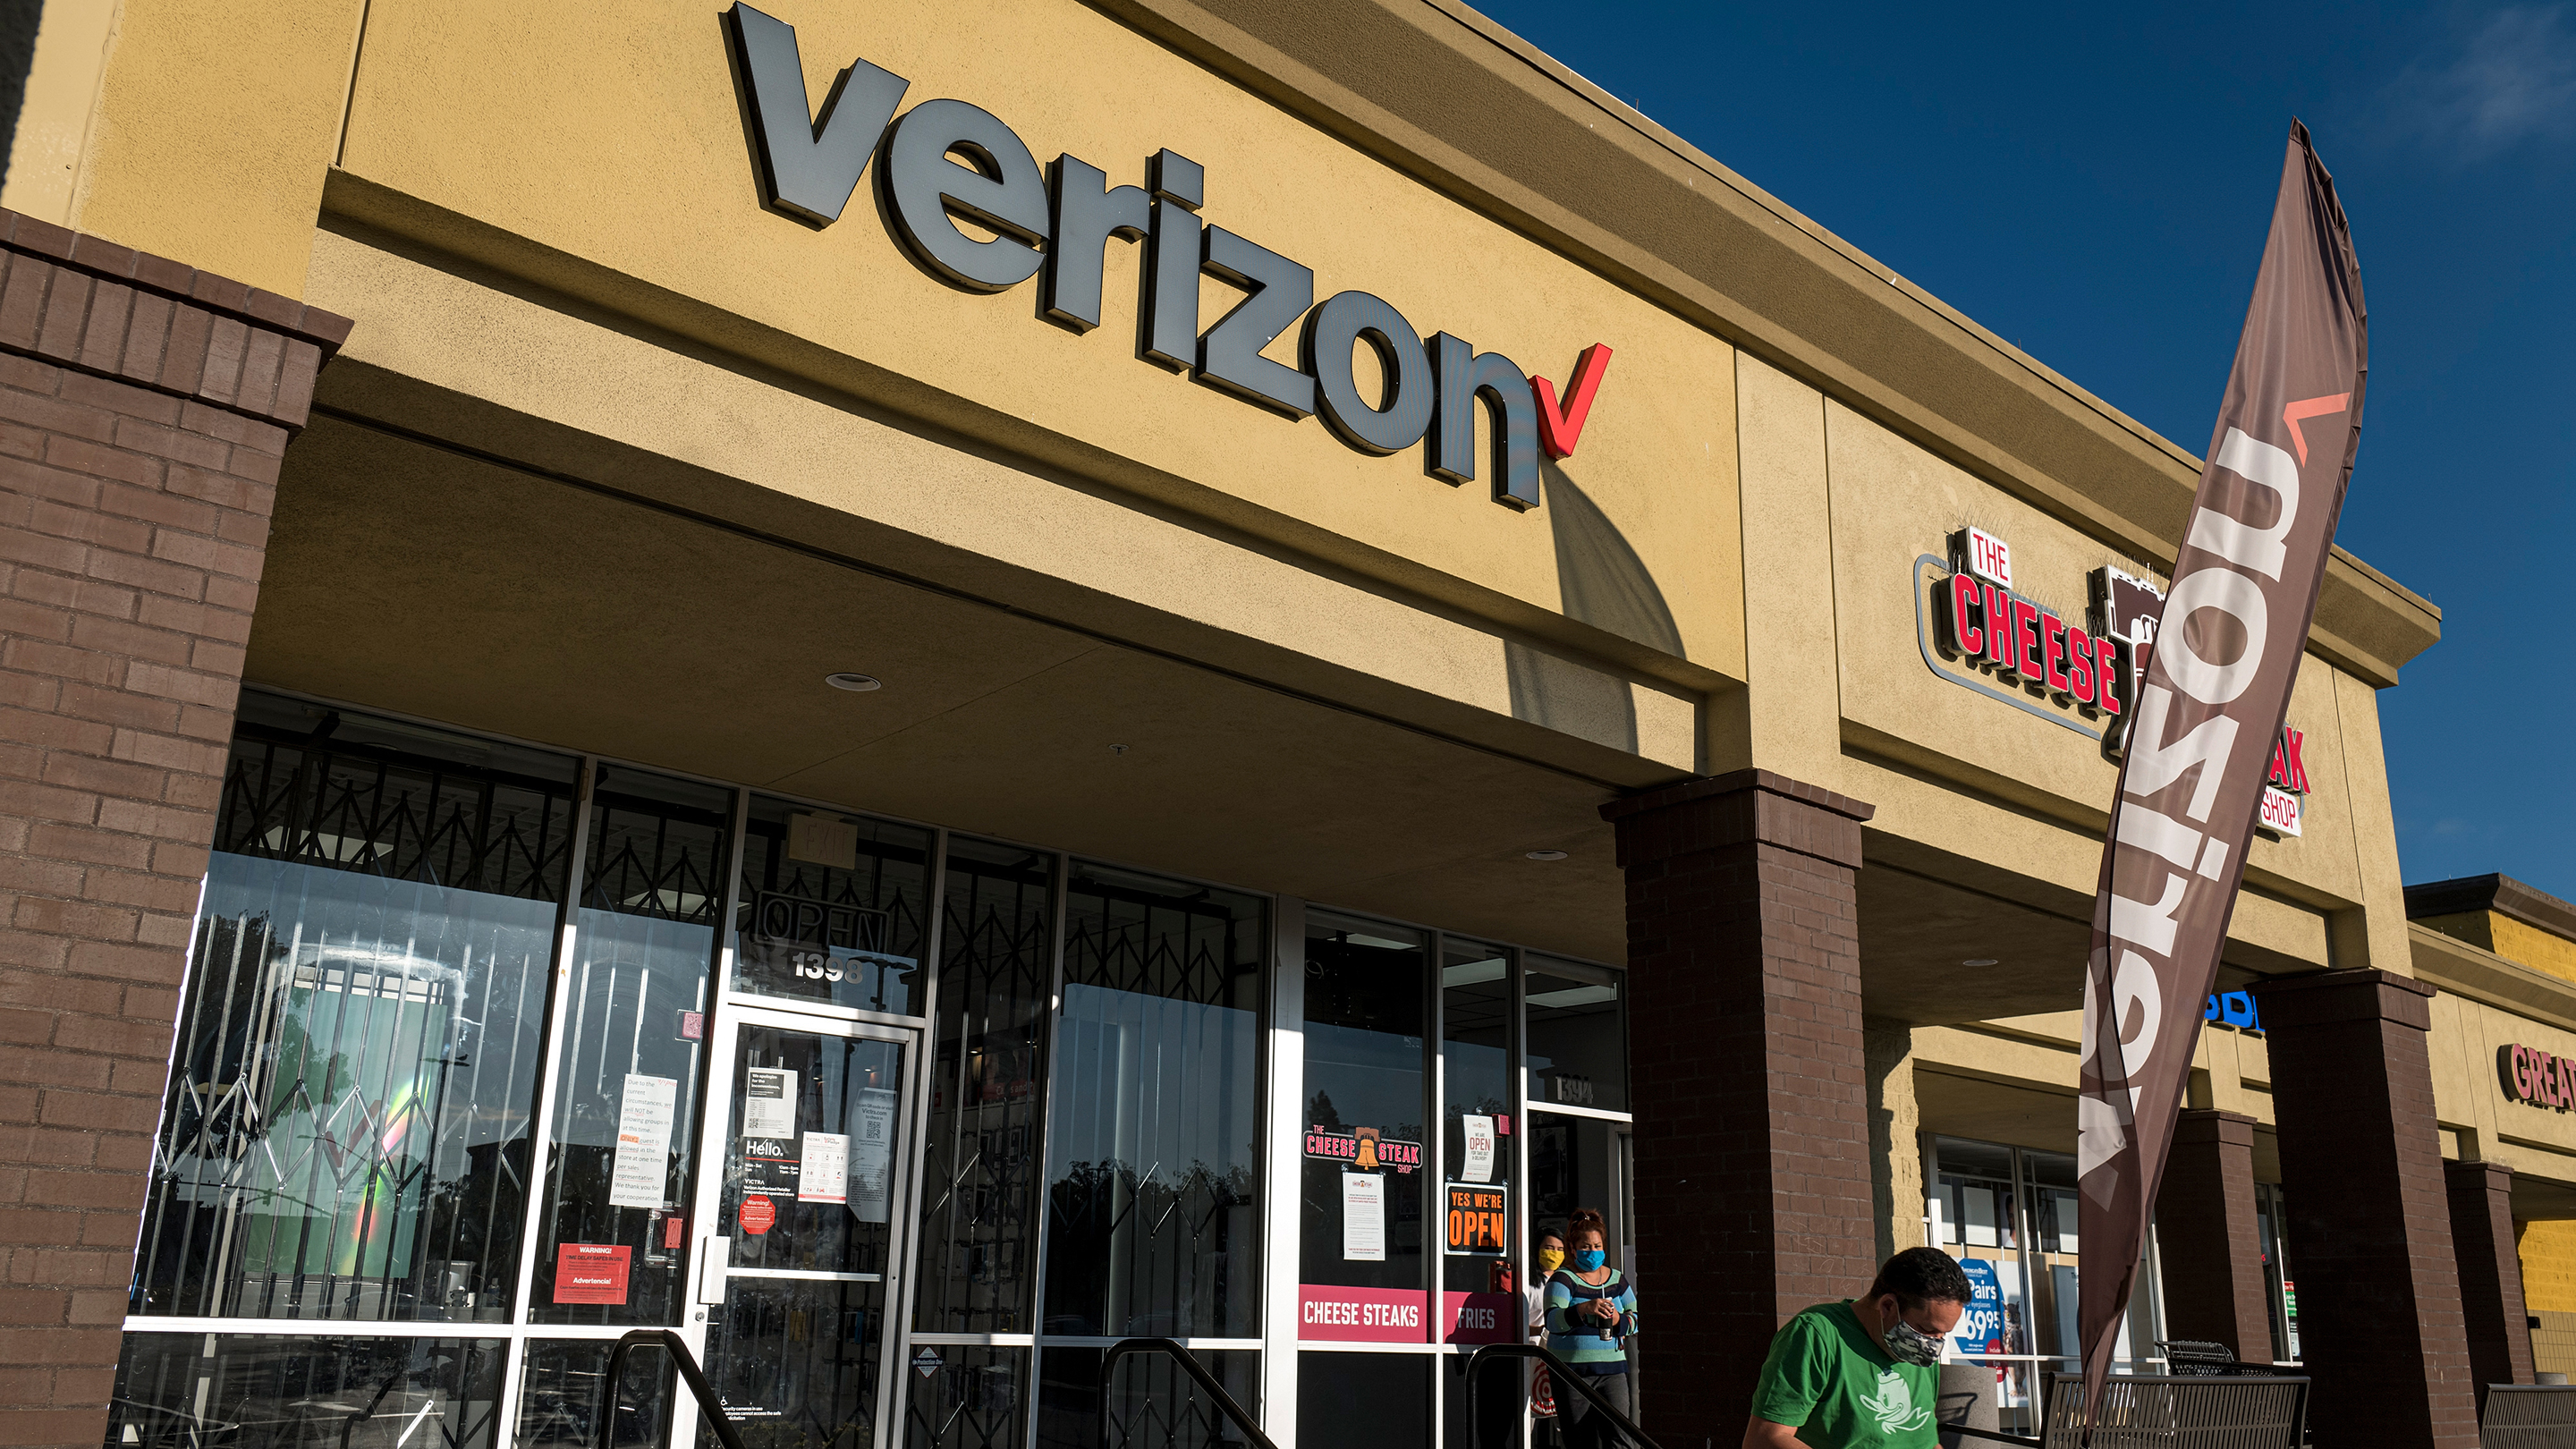 Verizon is enrolling COVID-affected customers in extended payment plans thumbnail